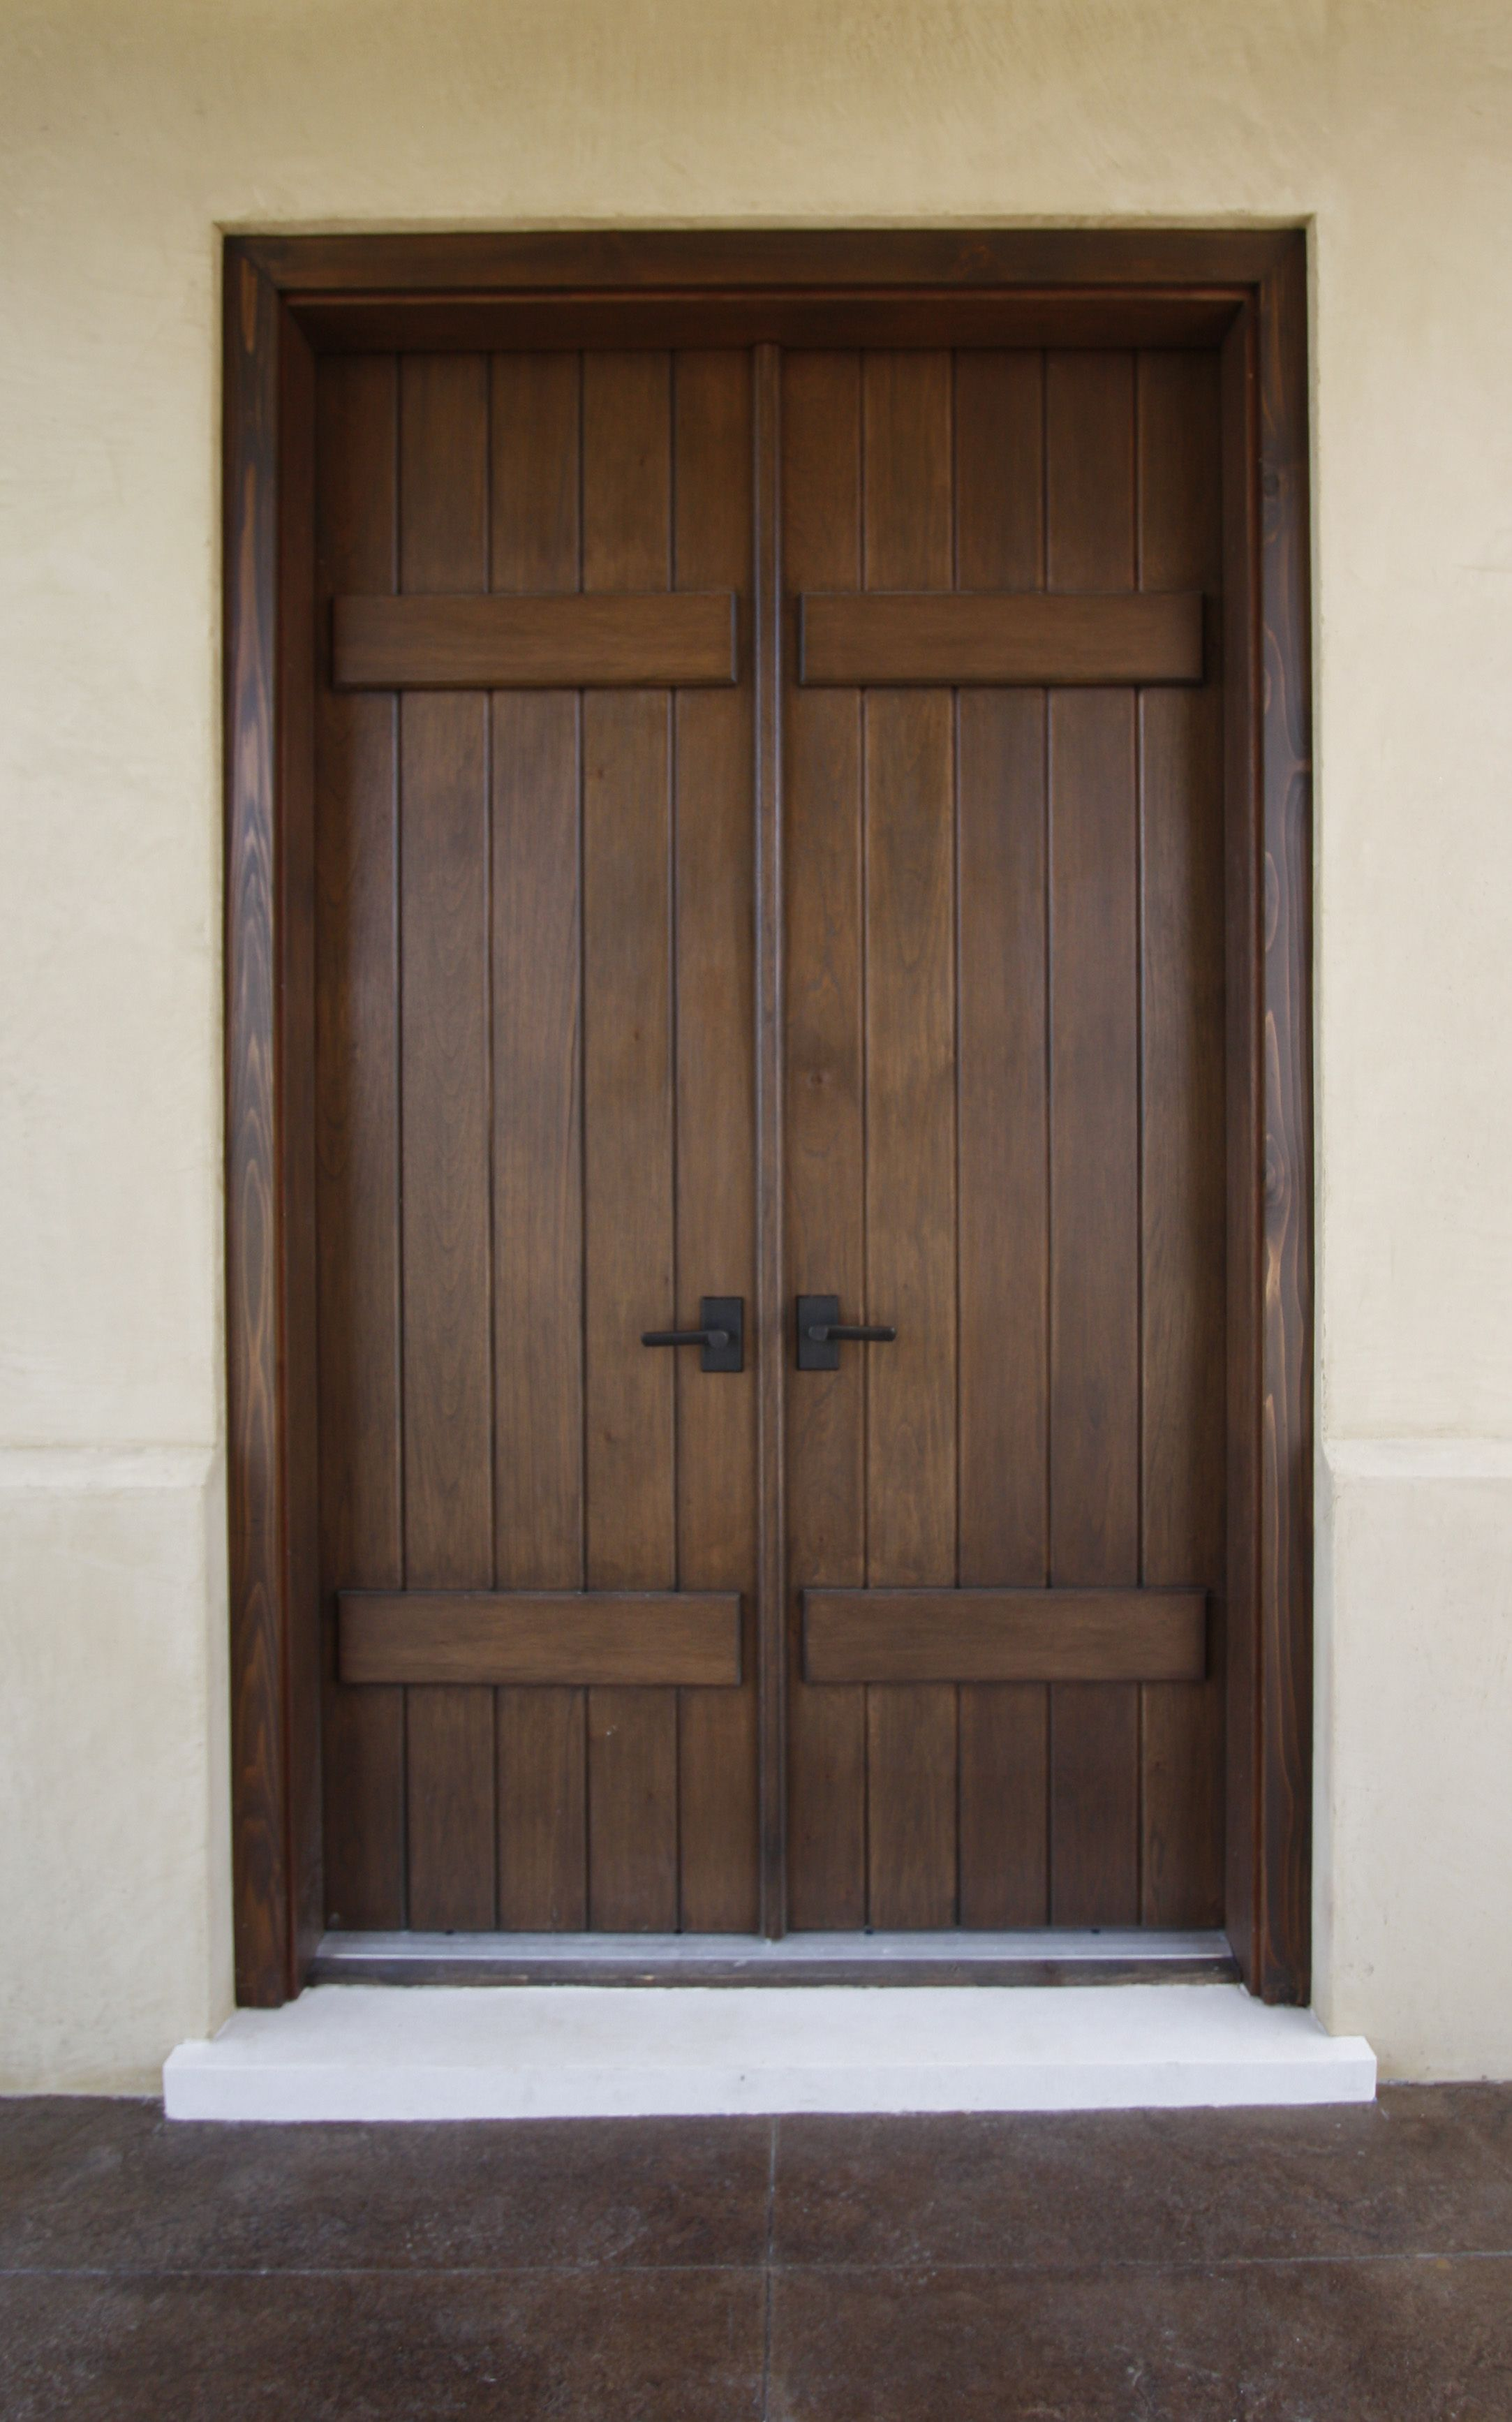 Spanish Cedar Exterior Door In A Board And Batten Style Doors In